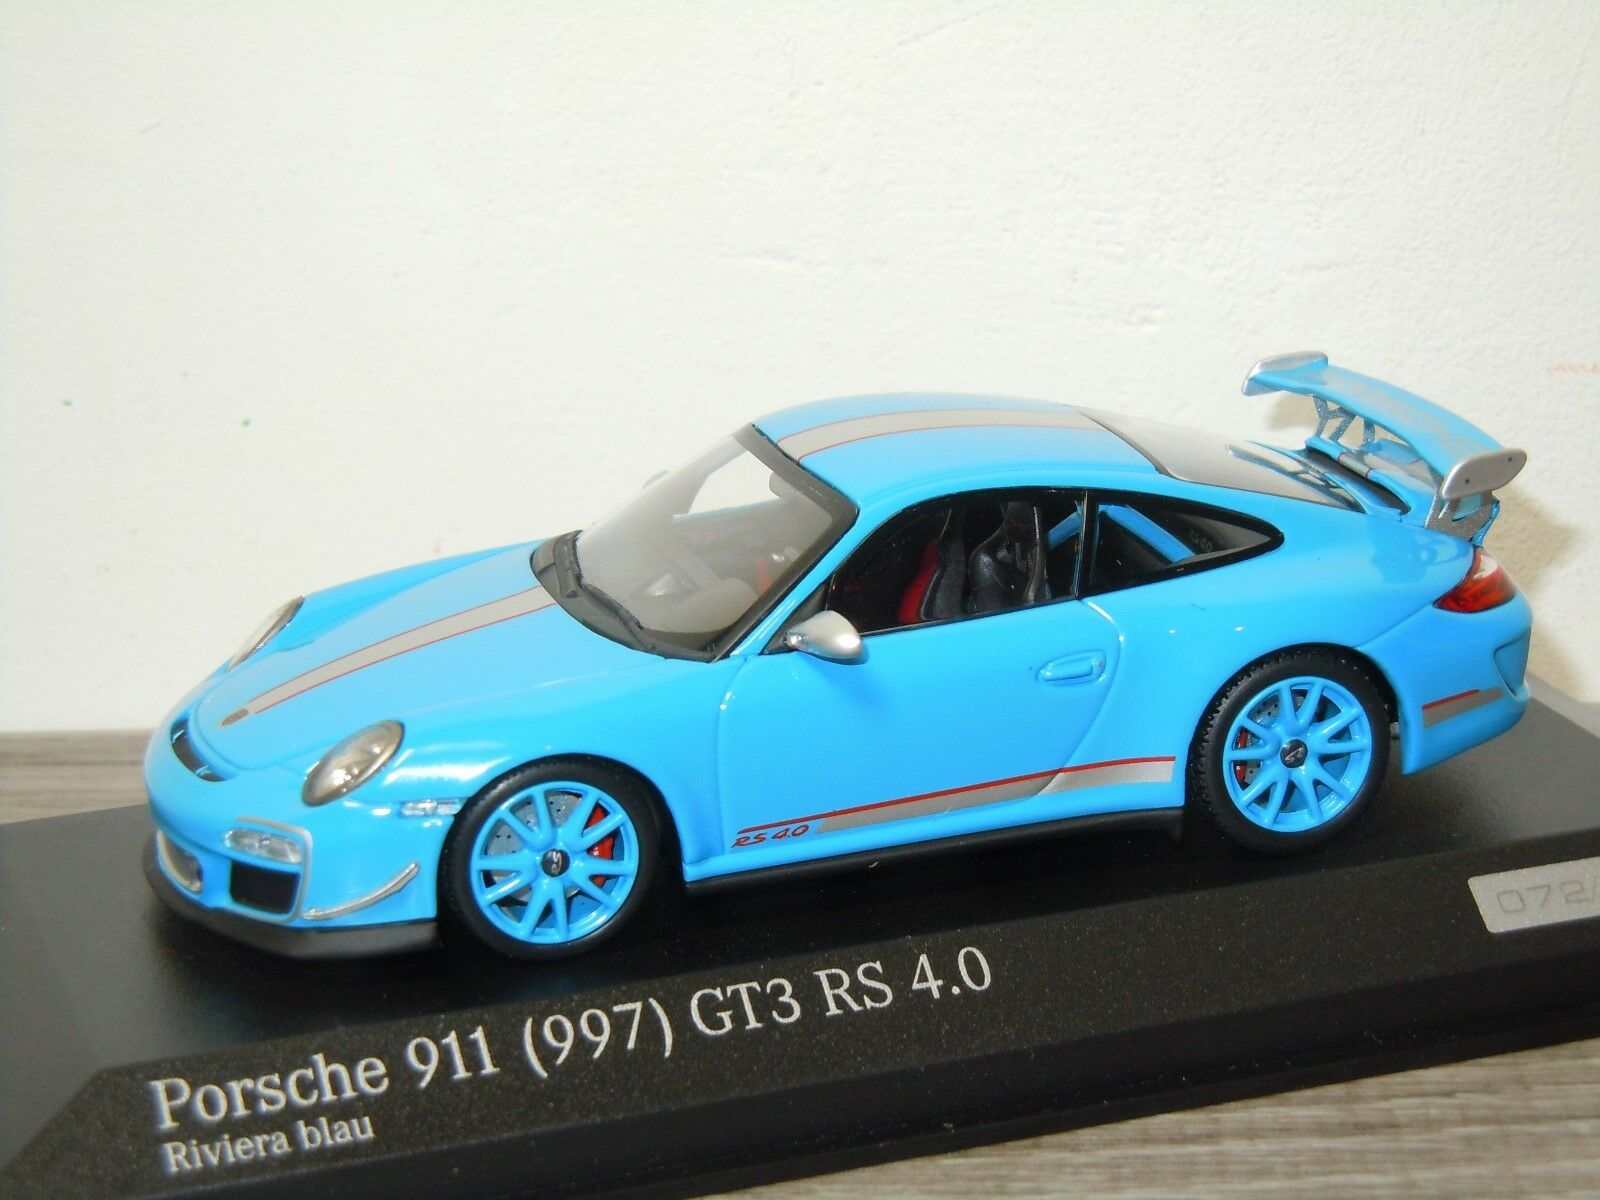 Porsche 911 997 GT3 RS 4.0 - Minichamps 1 43 in Box 30629